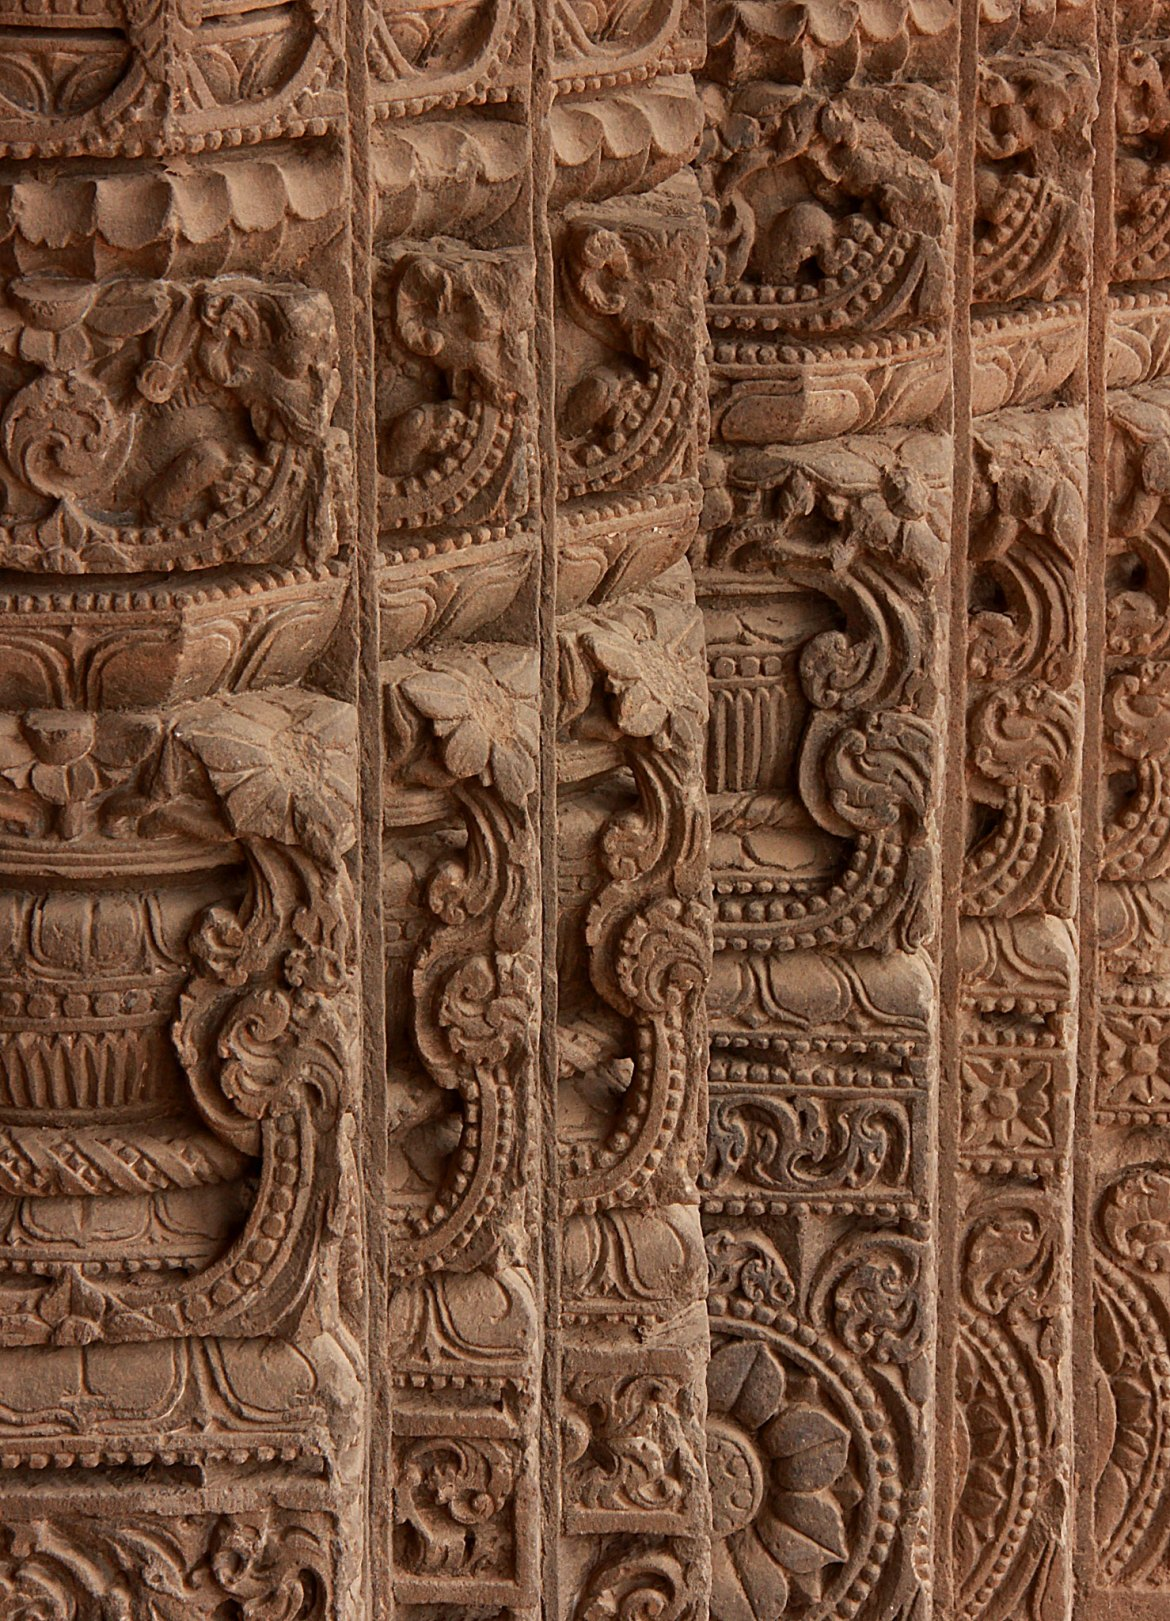 The carvings at Abhaneri Stepwell